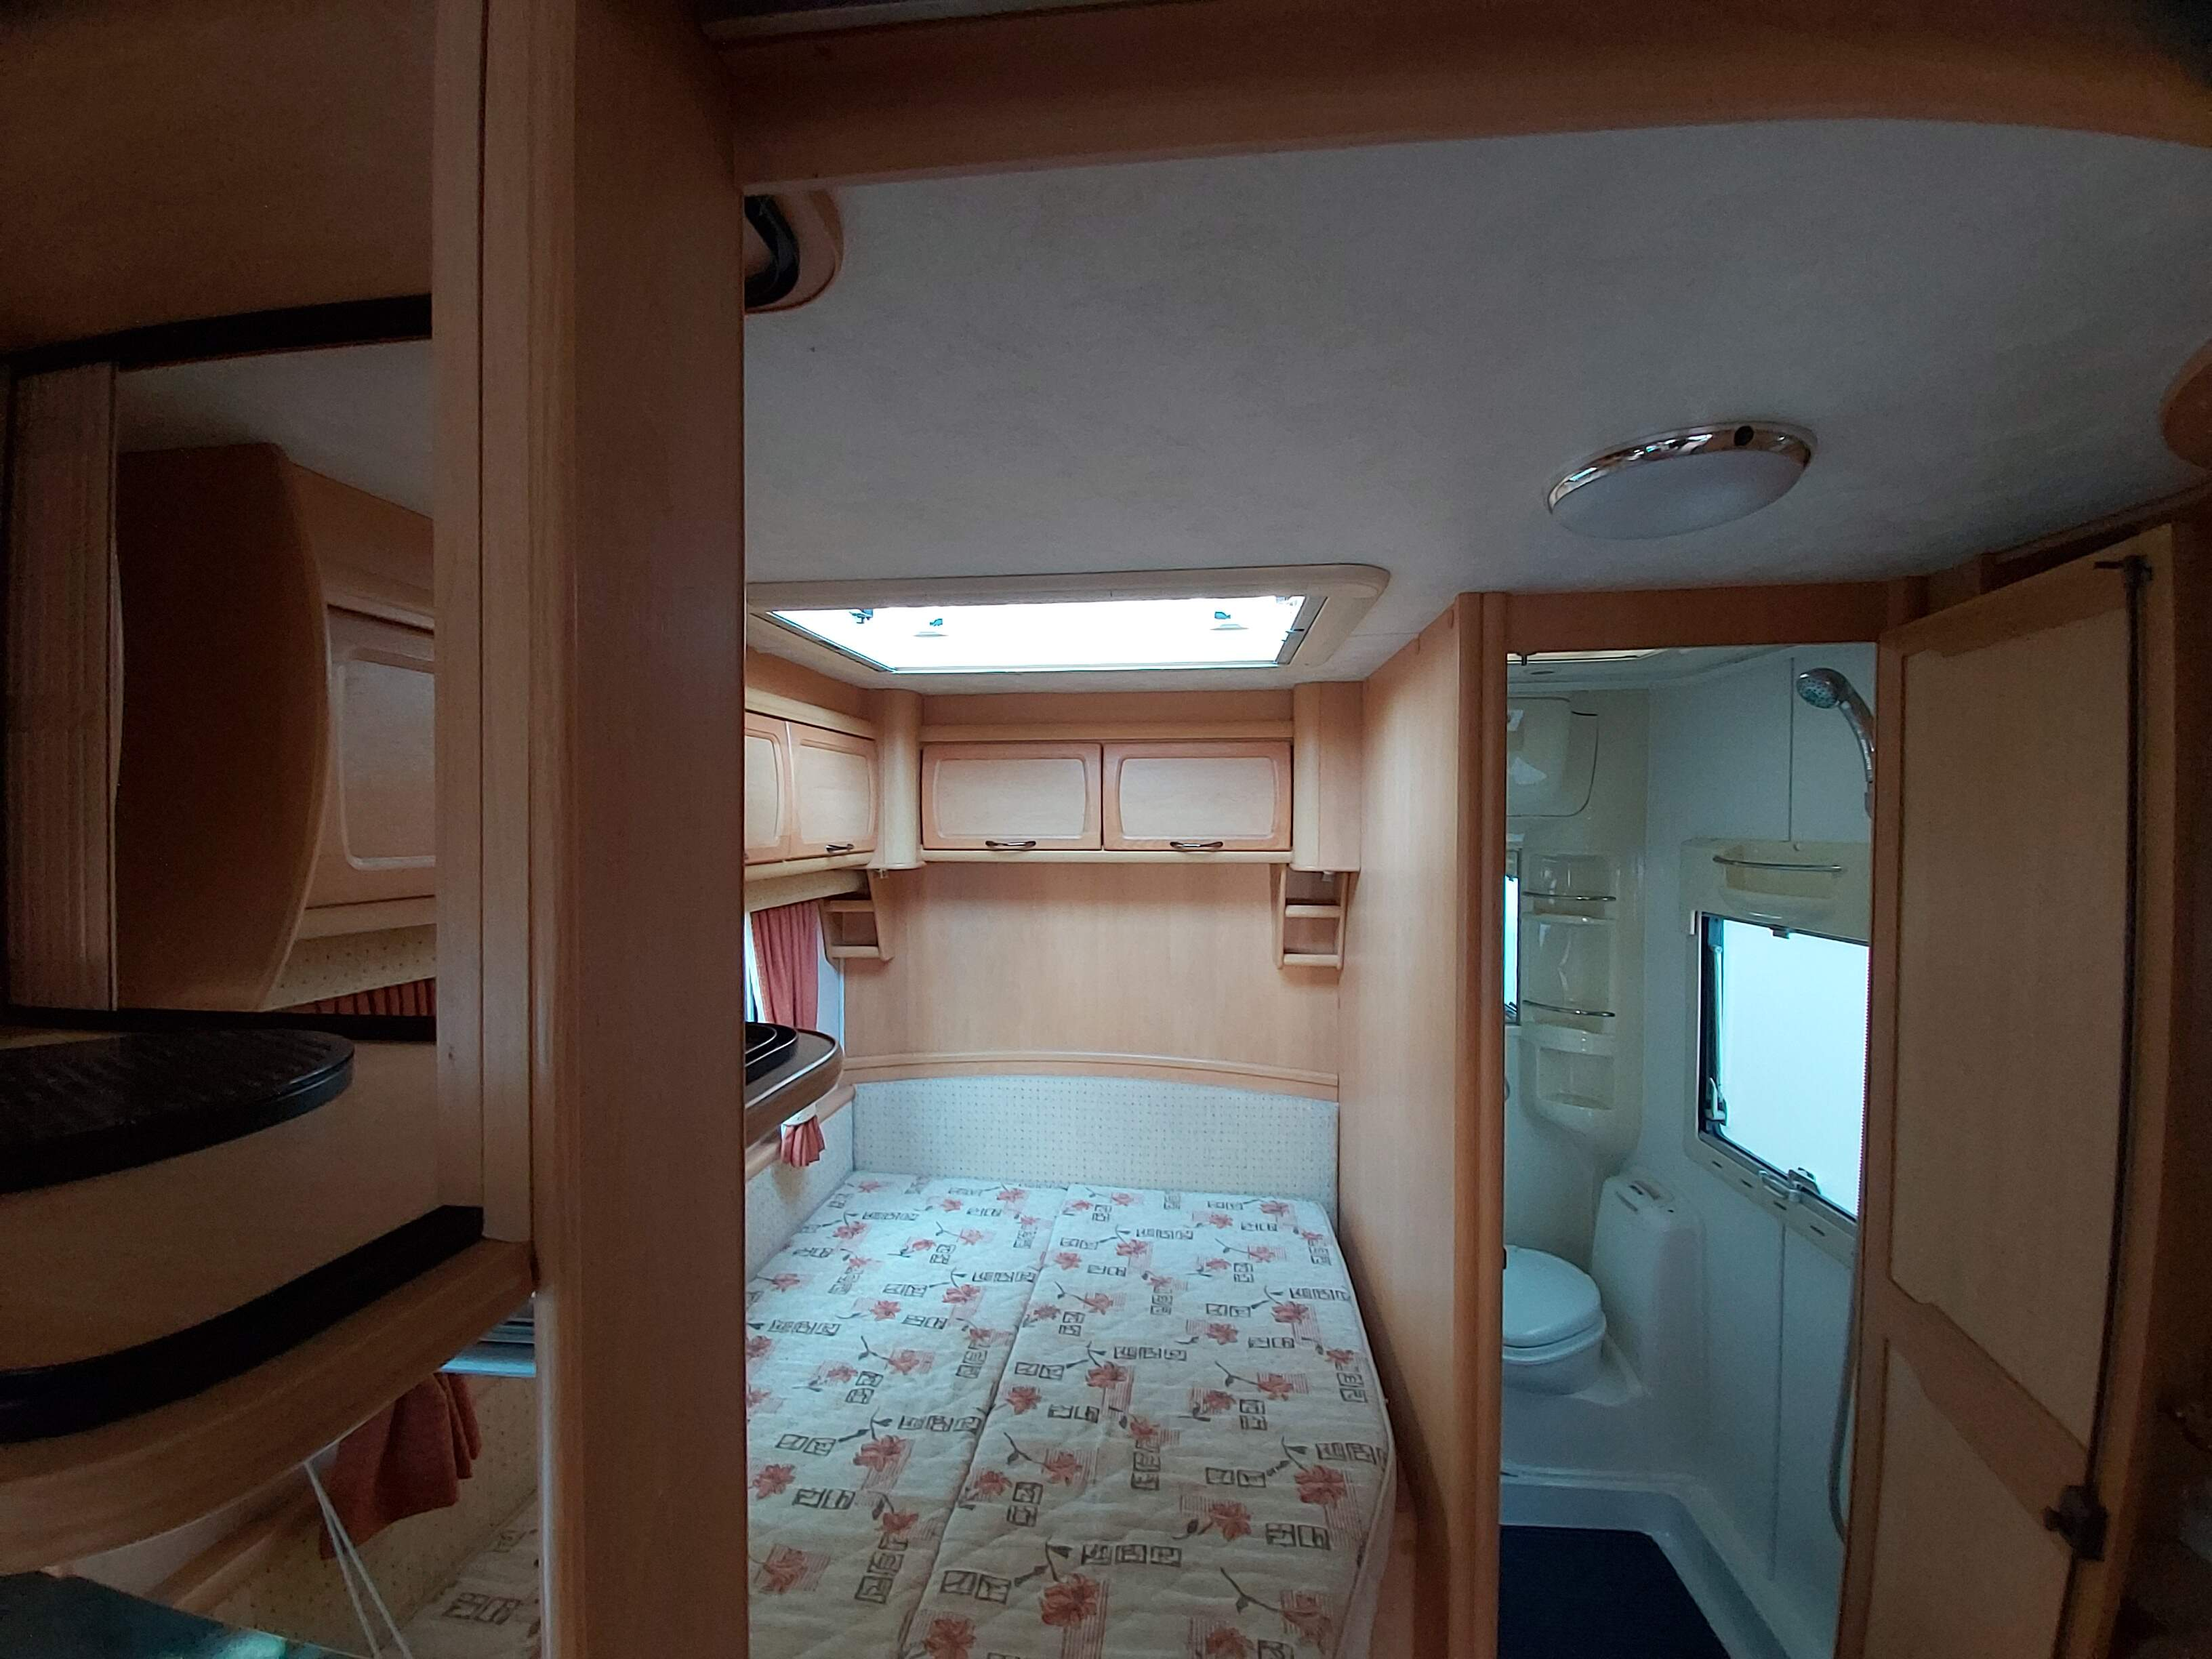 2004 Elddis Odyssey 534 4 Berth Fixed Bed Caravan with Motor Mover